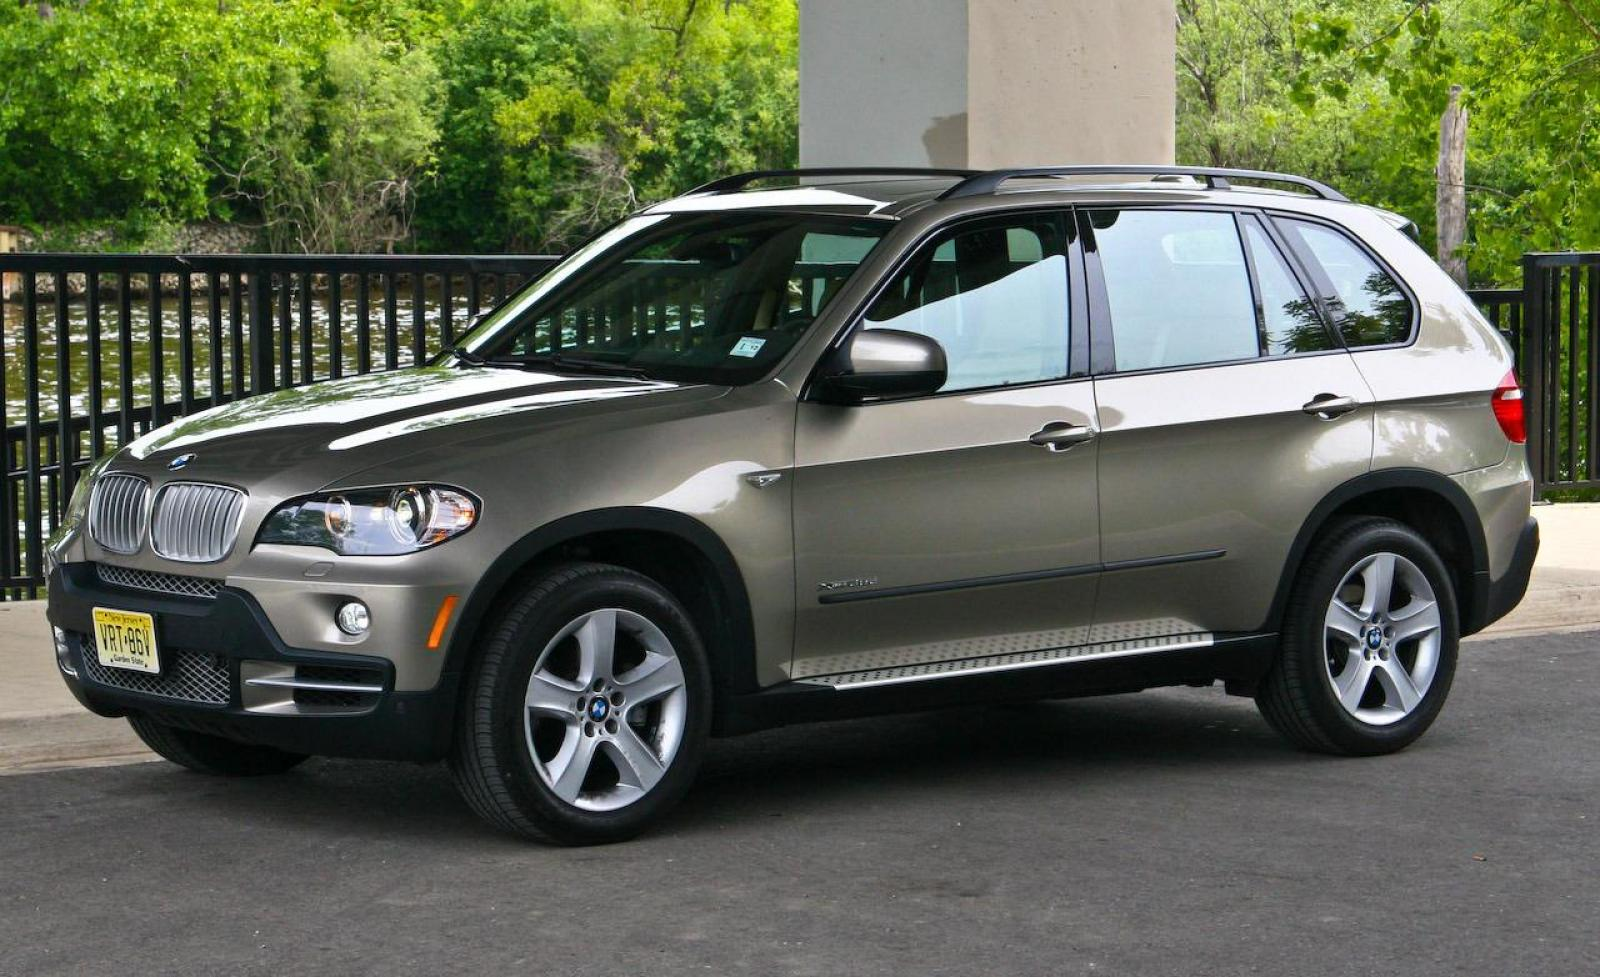 2009 bmw x5 information and photos zombiedrive. Black Bedroom Furniture Sets. Home Design Ideas